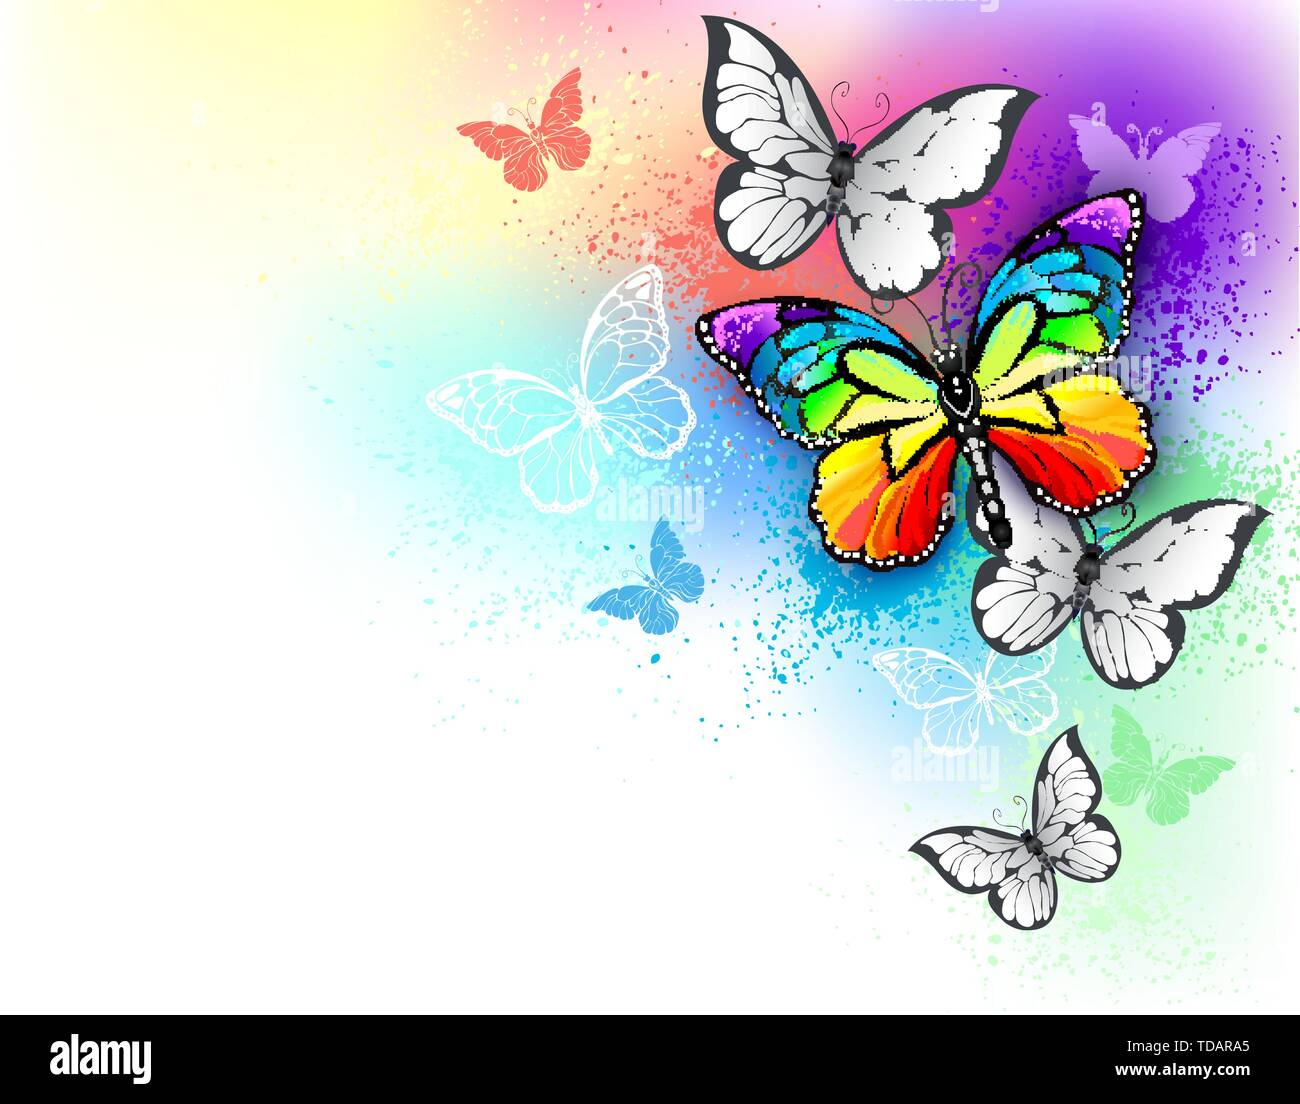 Background with bright paint, colors and flying realistic, rainbow and white butterflies. - Stock Image